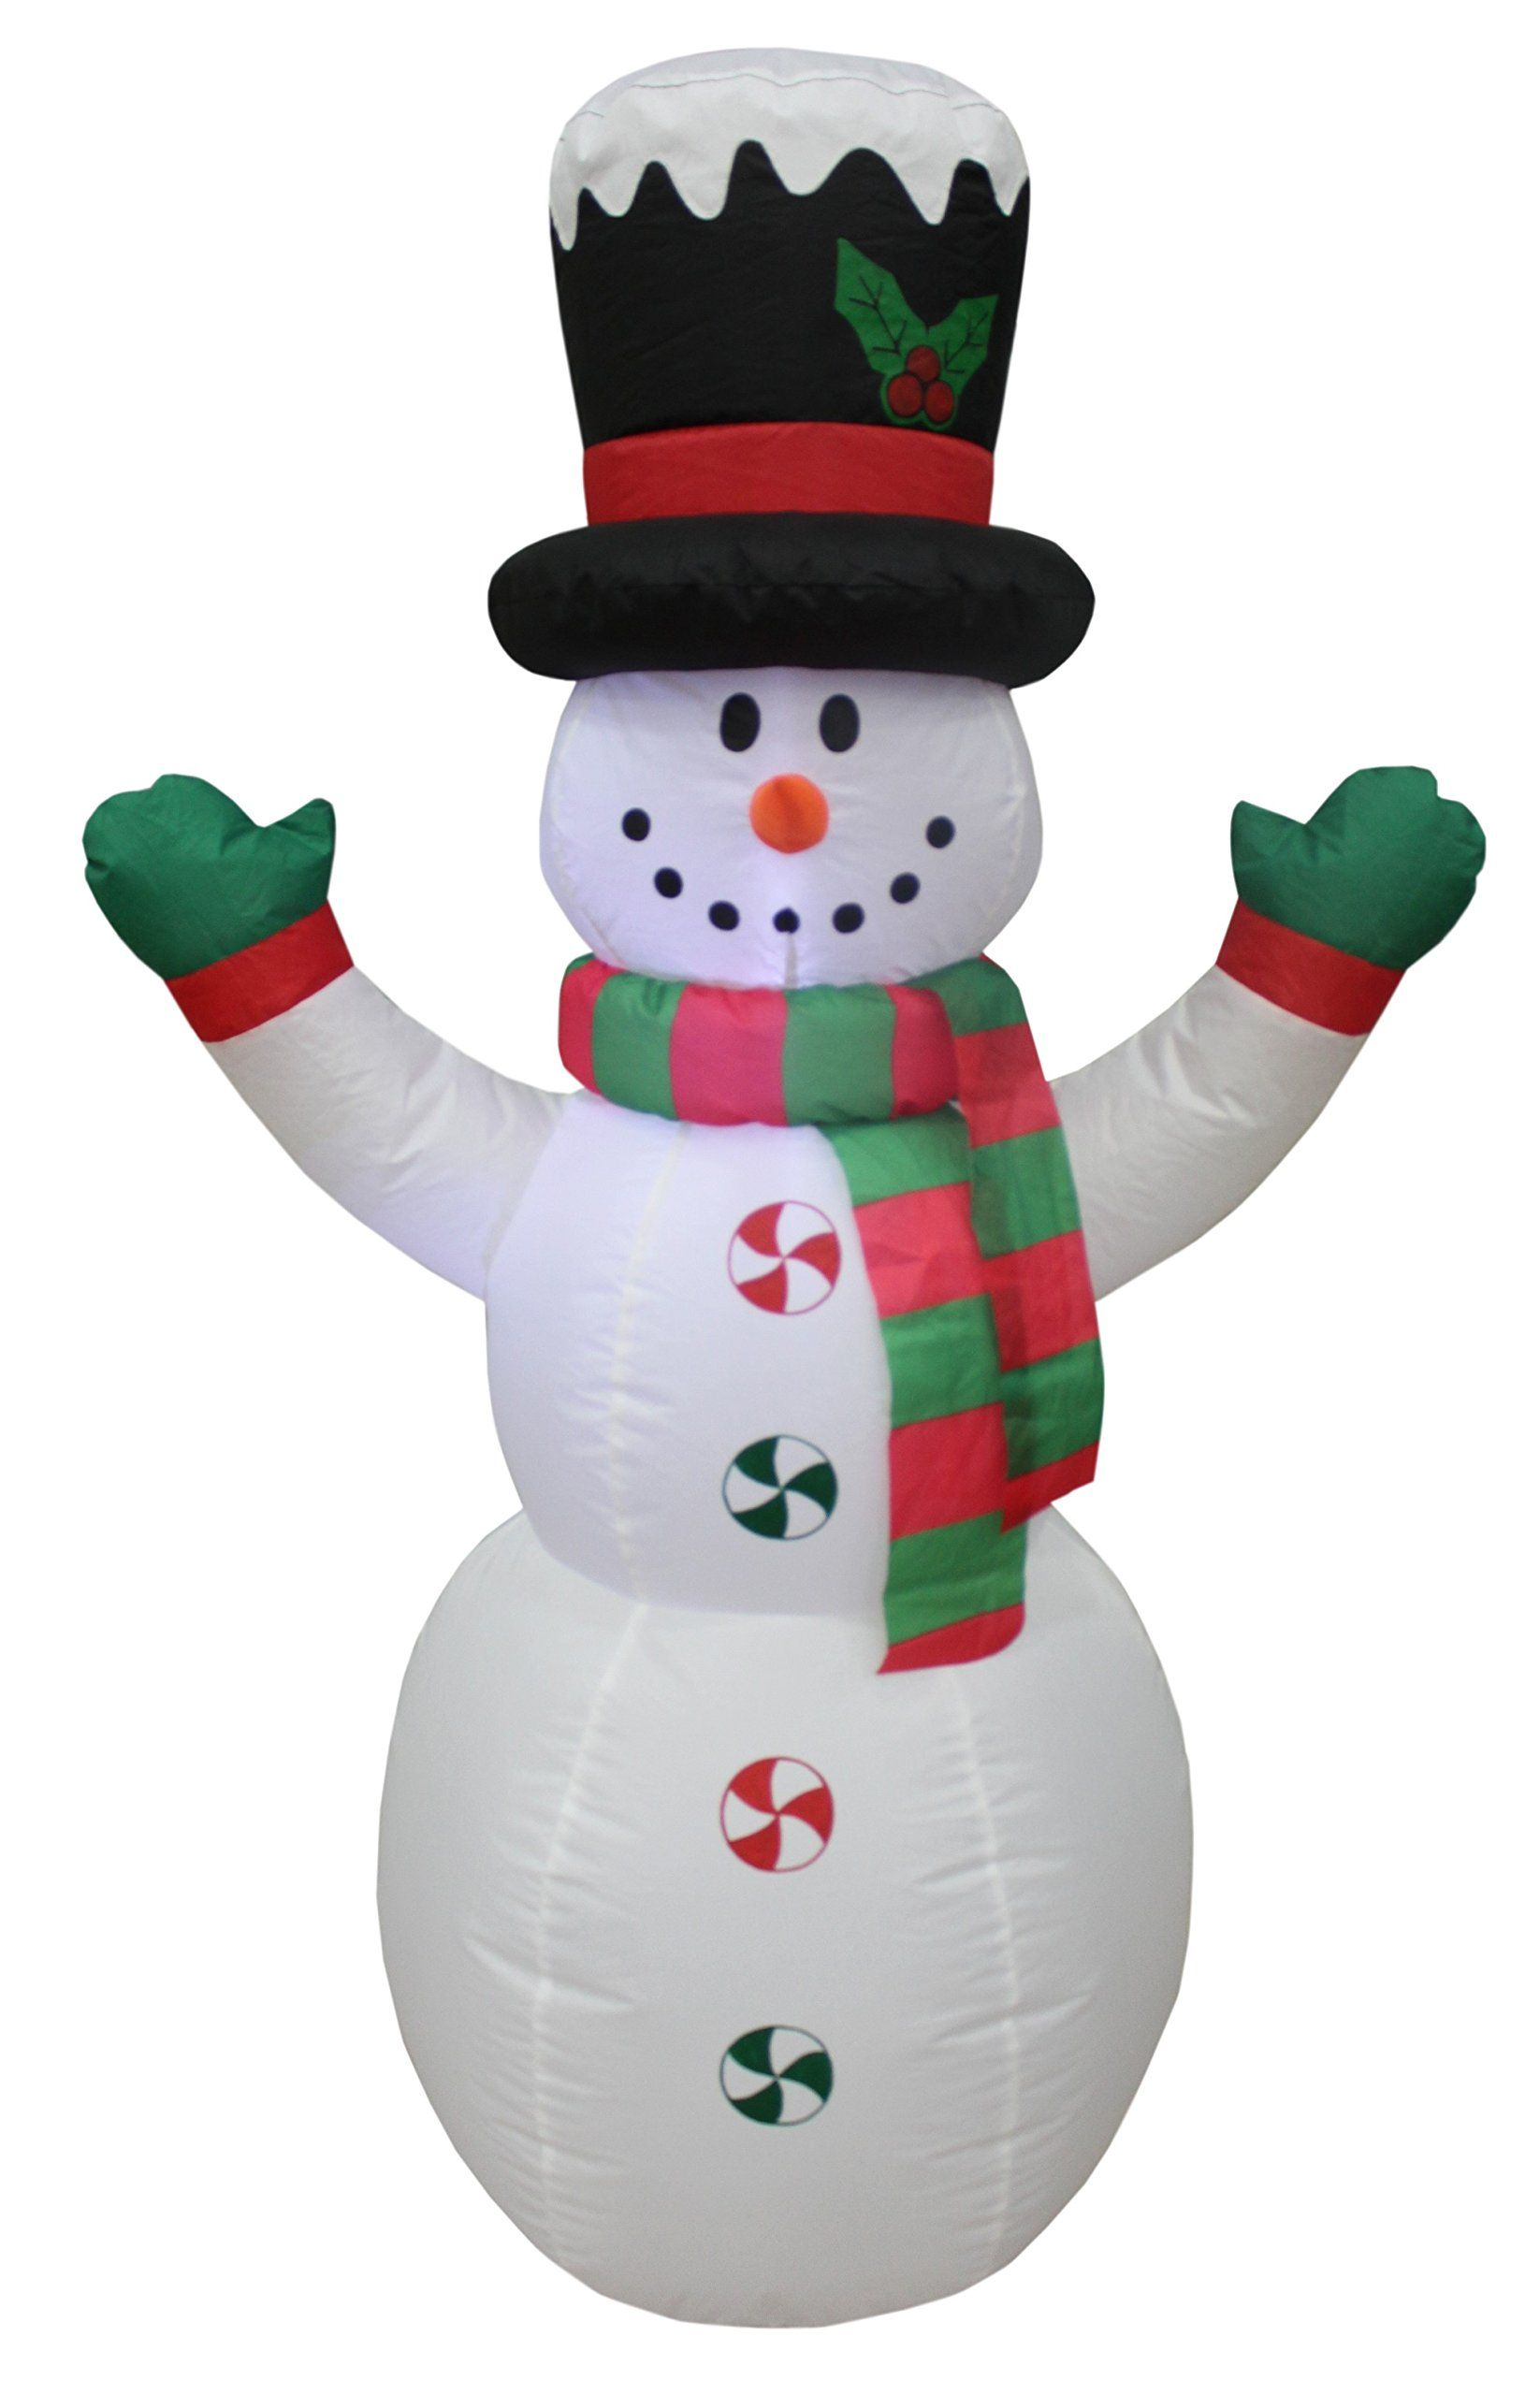 4 Foot Tall Lighted Christmas Inflatable Snowman with Hat LED Yard